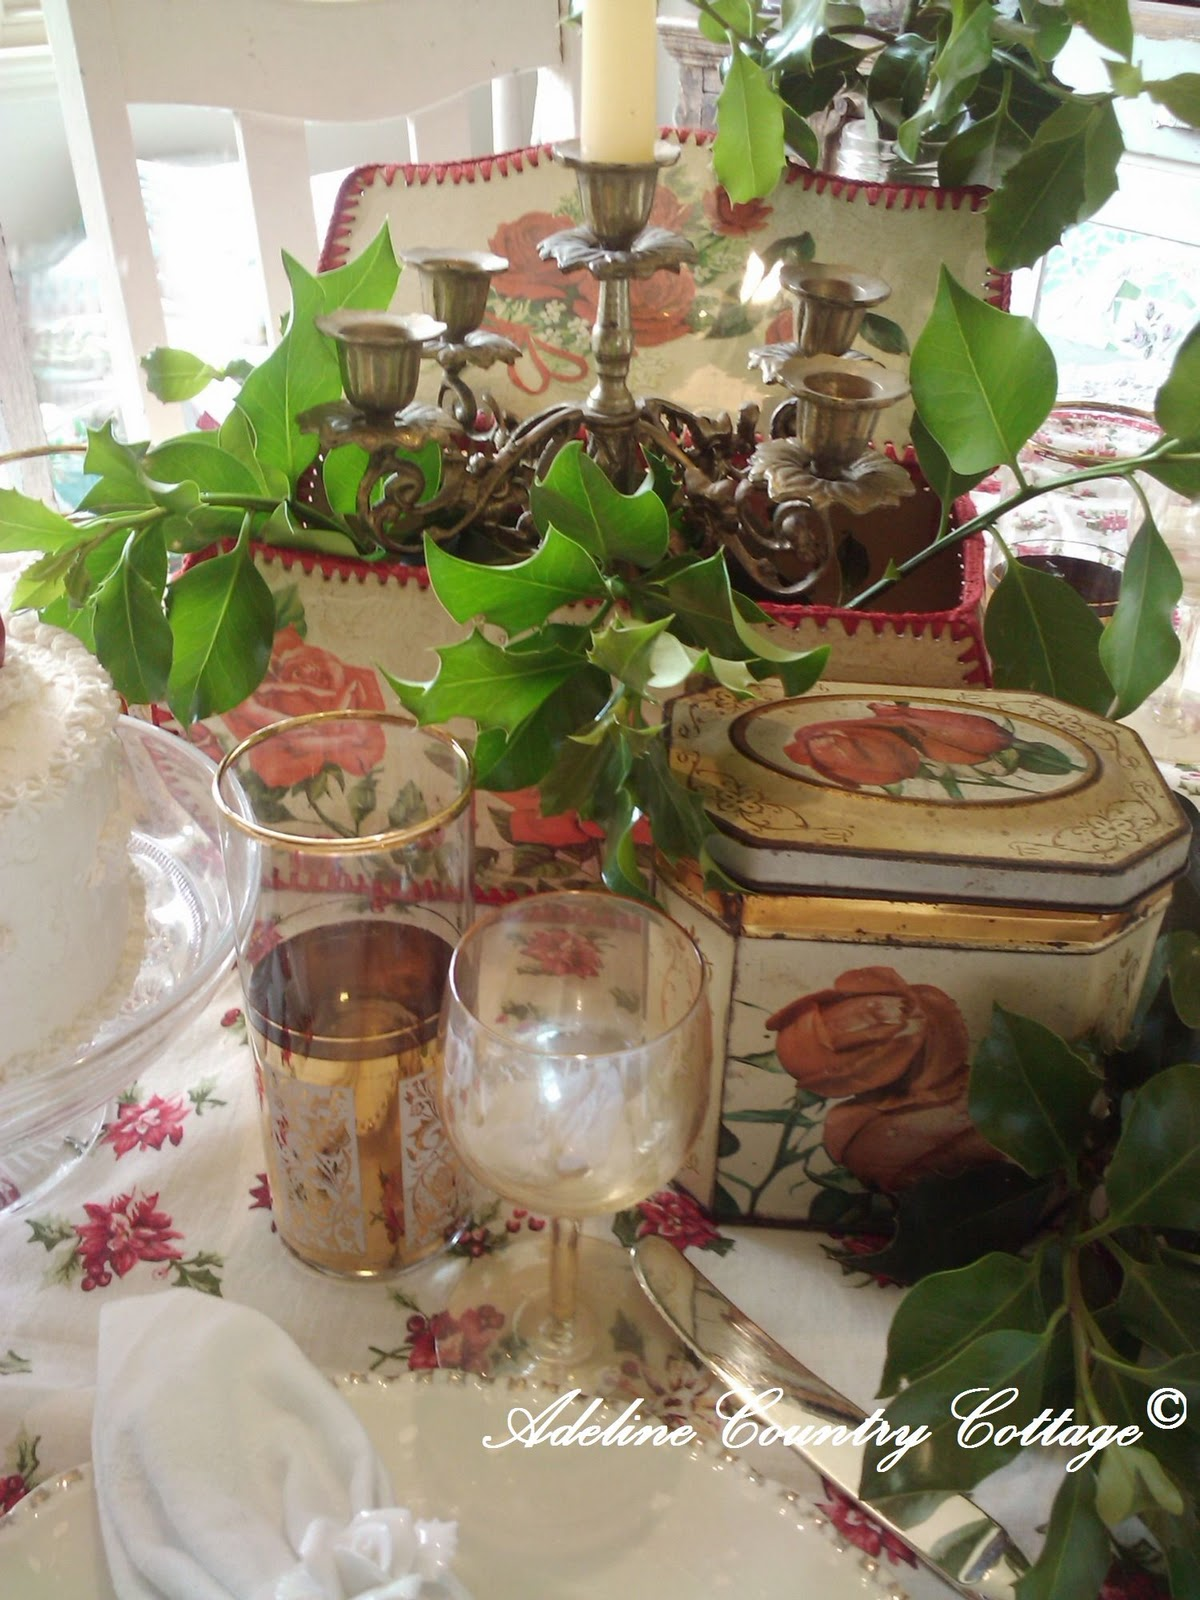 Adeline Country Cottage Inspiring Christmas Table Setting